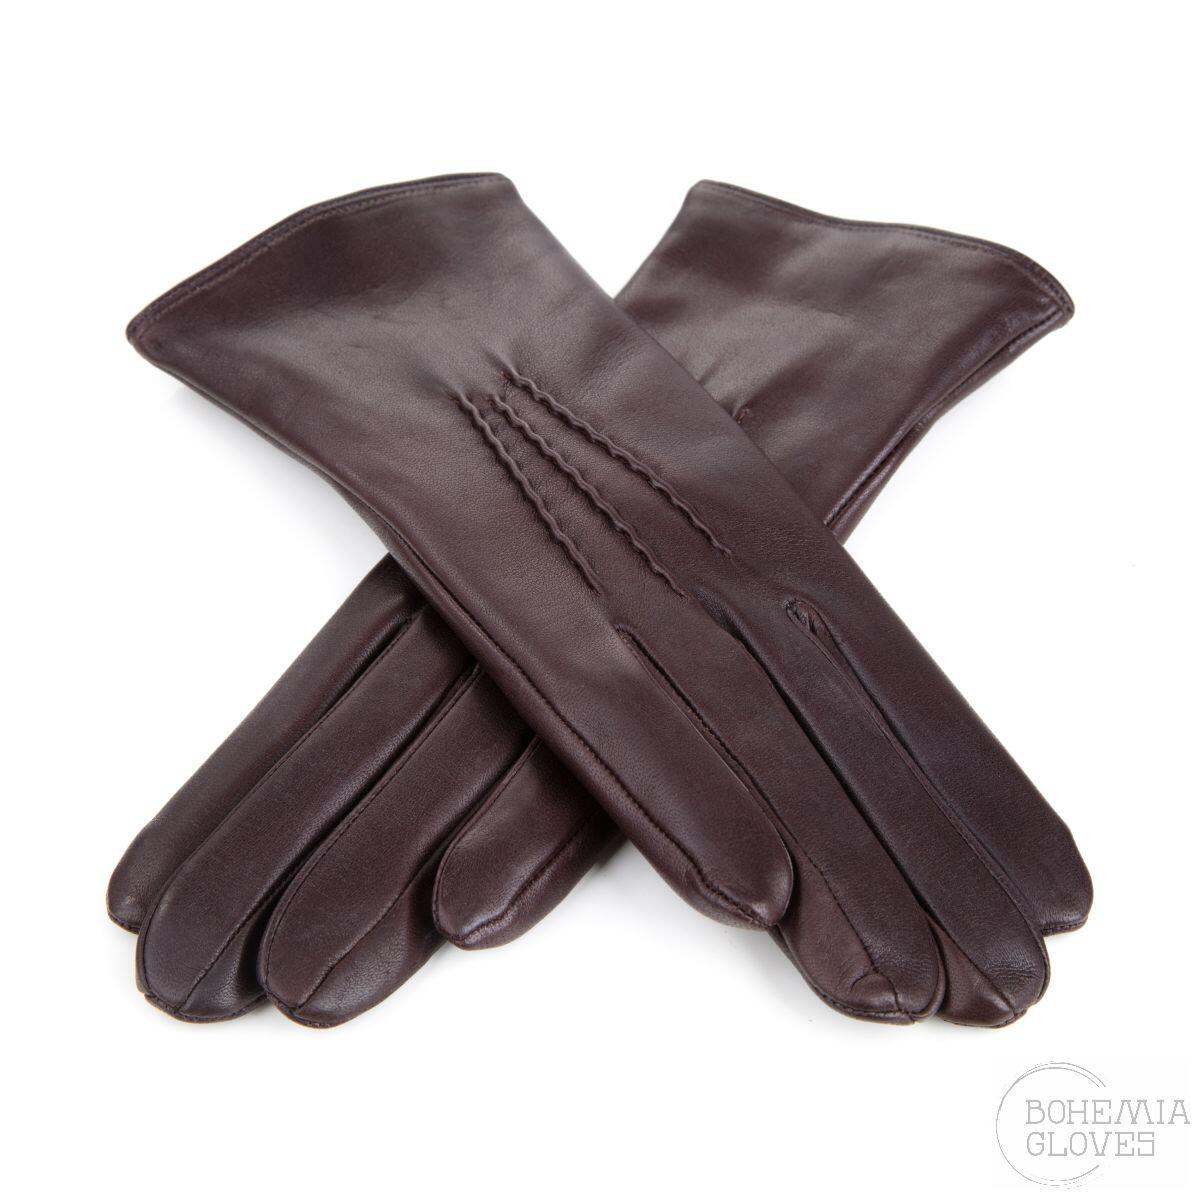 Brown leather gloves - BOHEMIA GLOVES